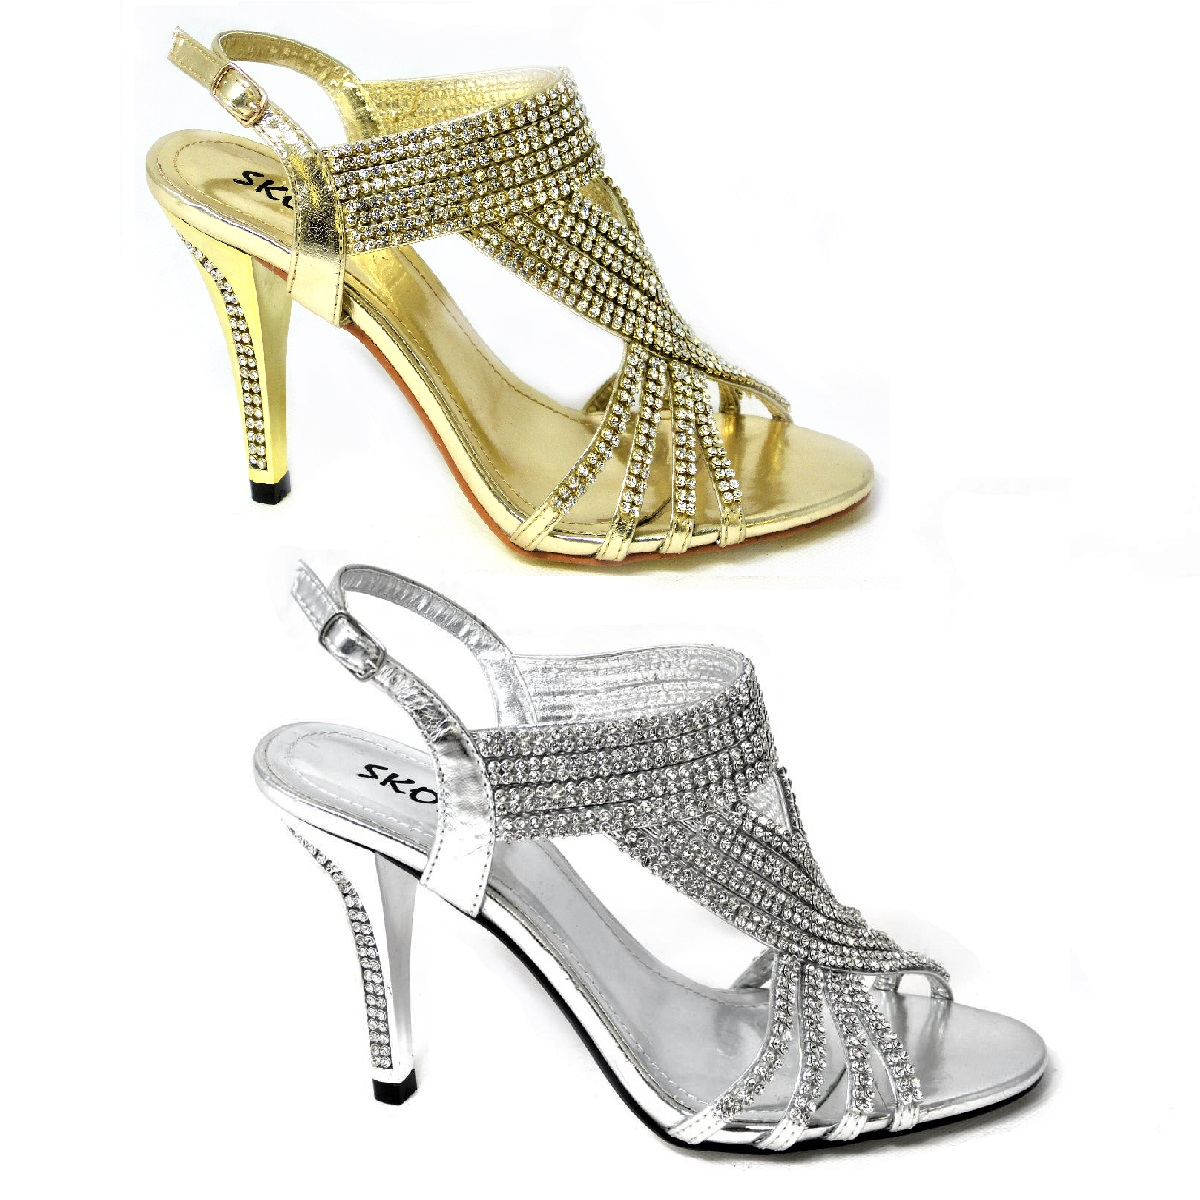 NEW LADIES WEDDING PROM EVENING PLATFORM SHOES DIAMANTE MID HEELS SIZE 3-8